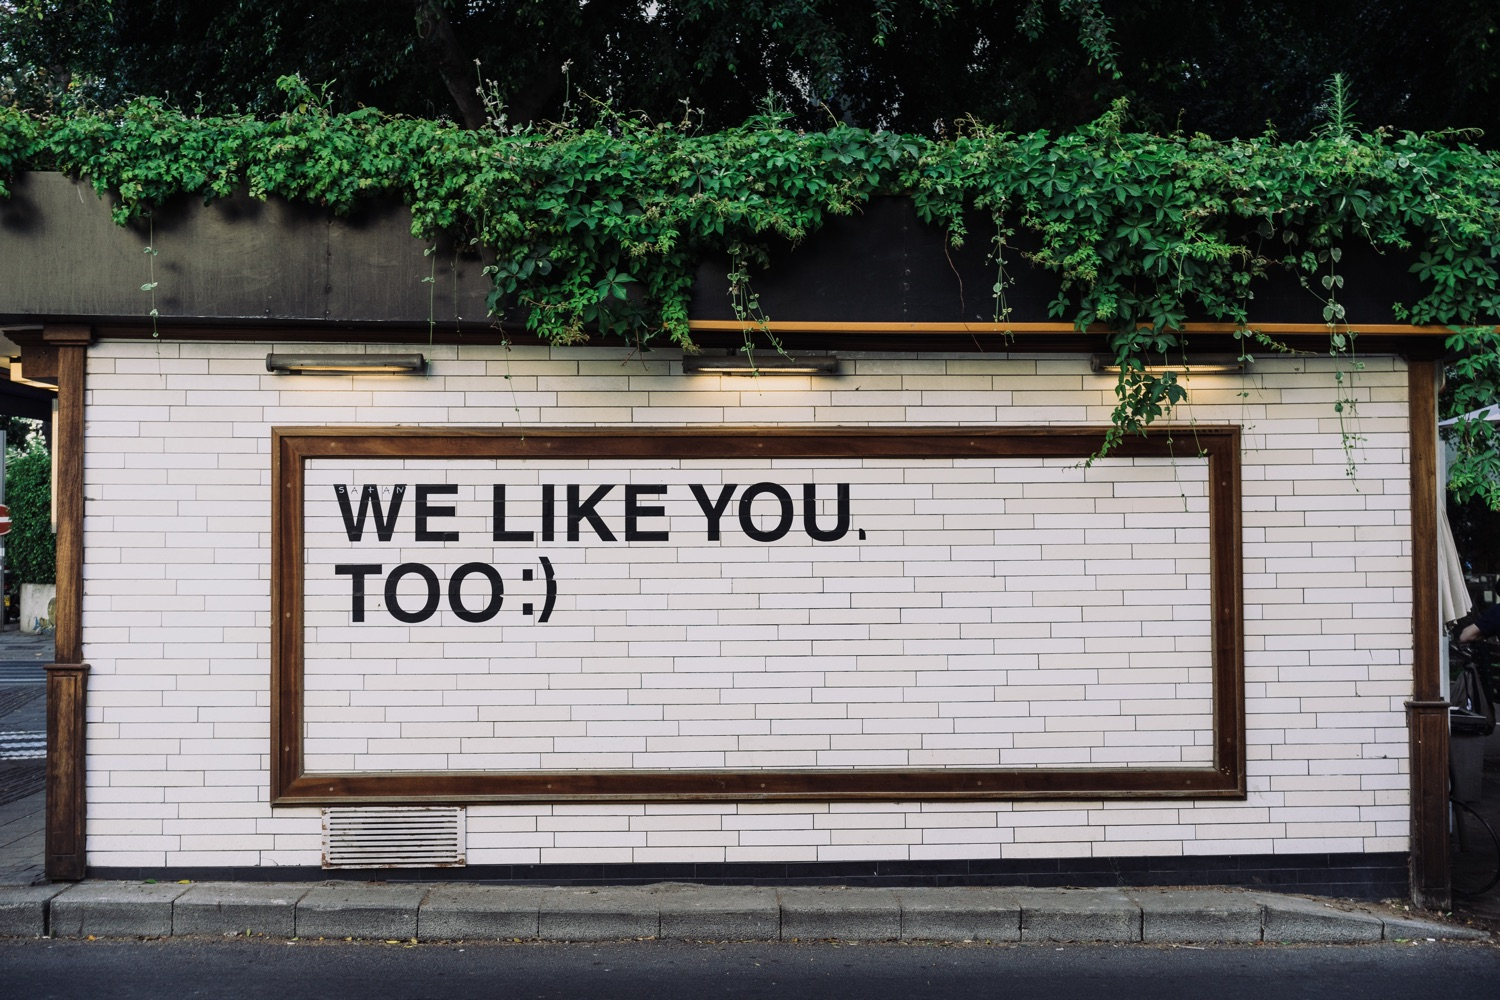 "Wandbild: ""We like you, too"". Foto Adam Jang/Unsplash"